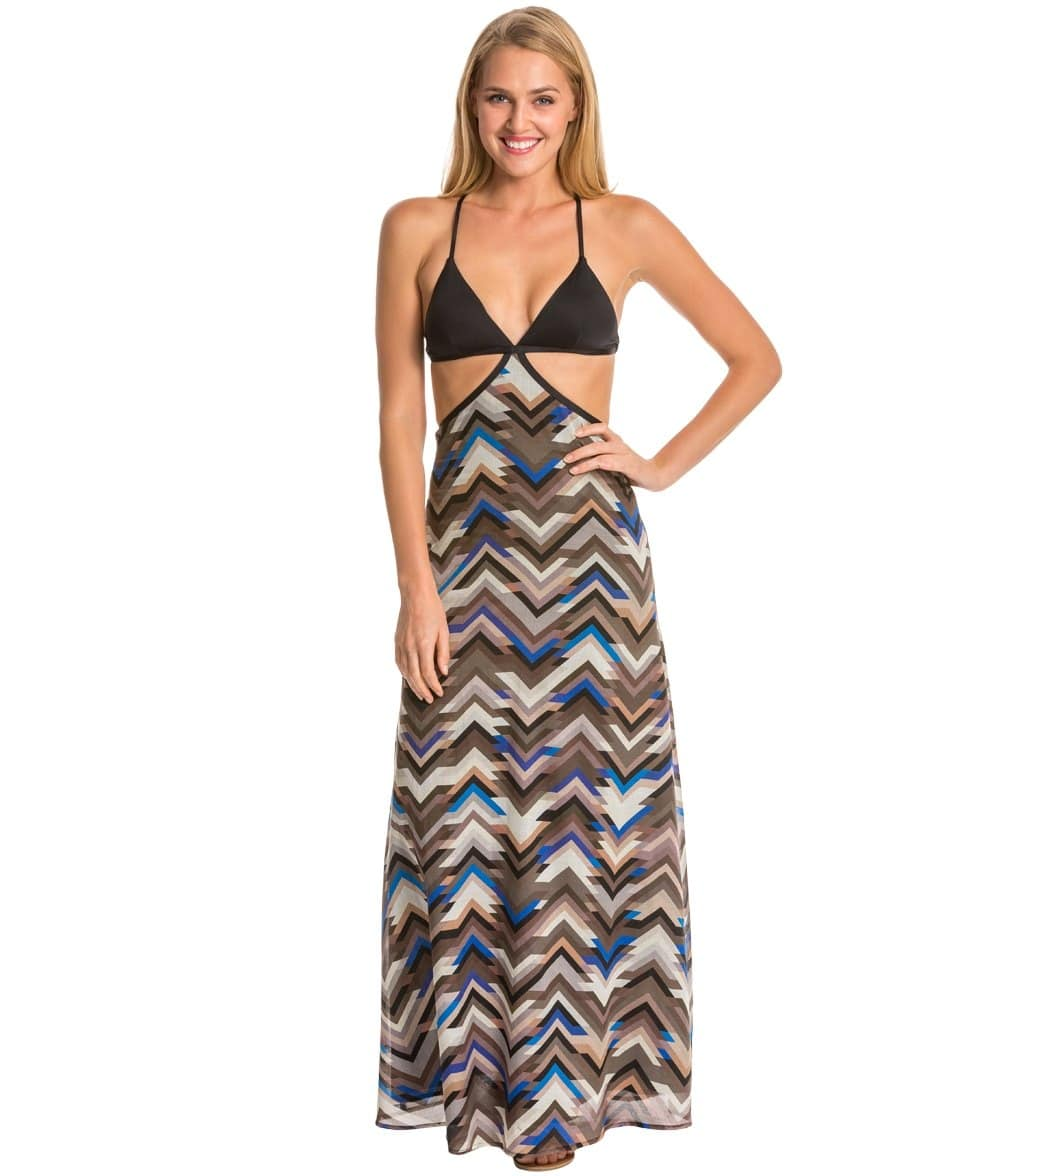 534cc4130d Vitamin A Sportif Valentina Cover Up Maxi Dress at SwimOutlet.com - Free  Shipping